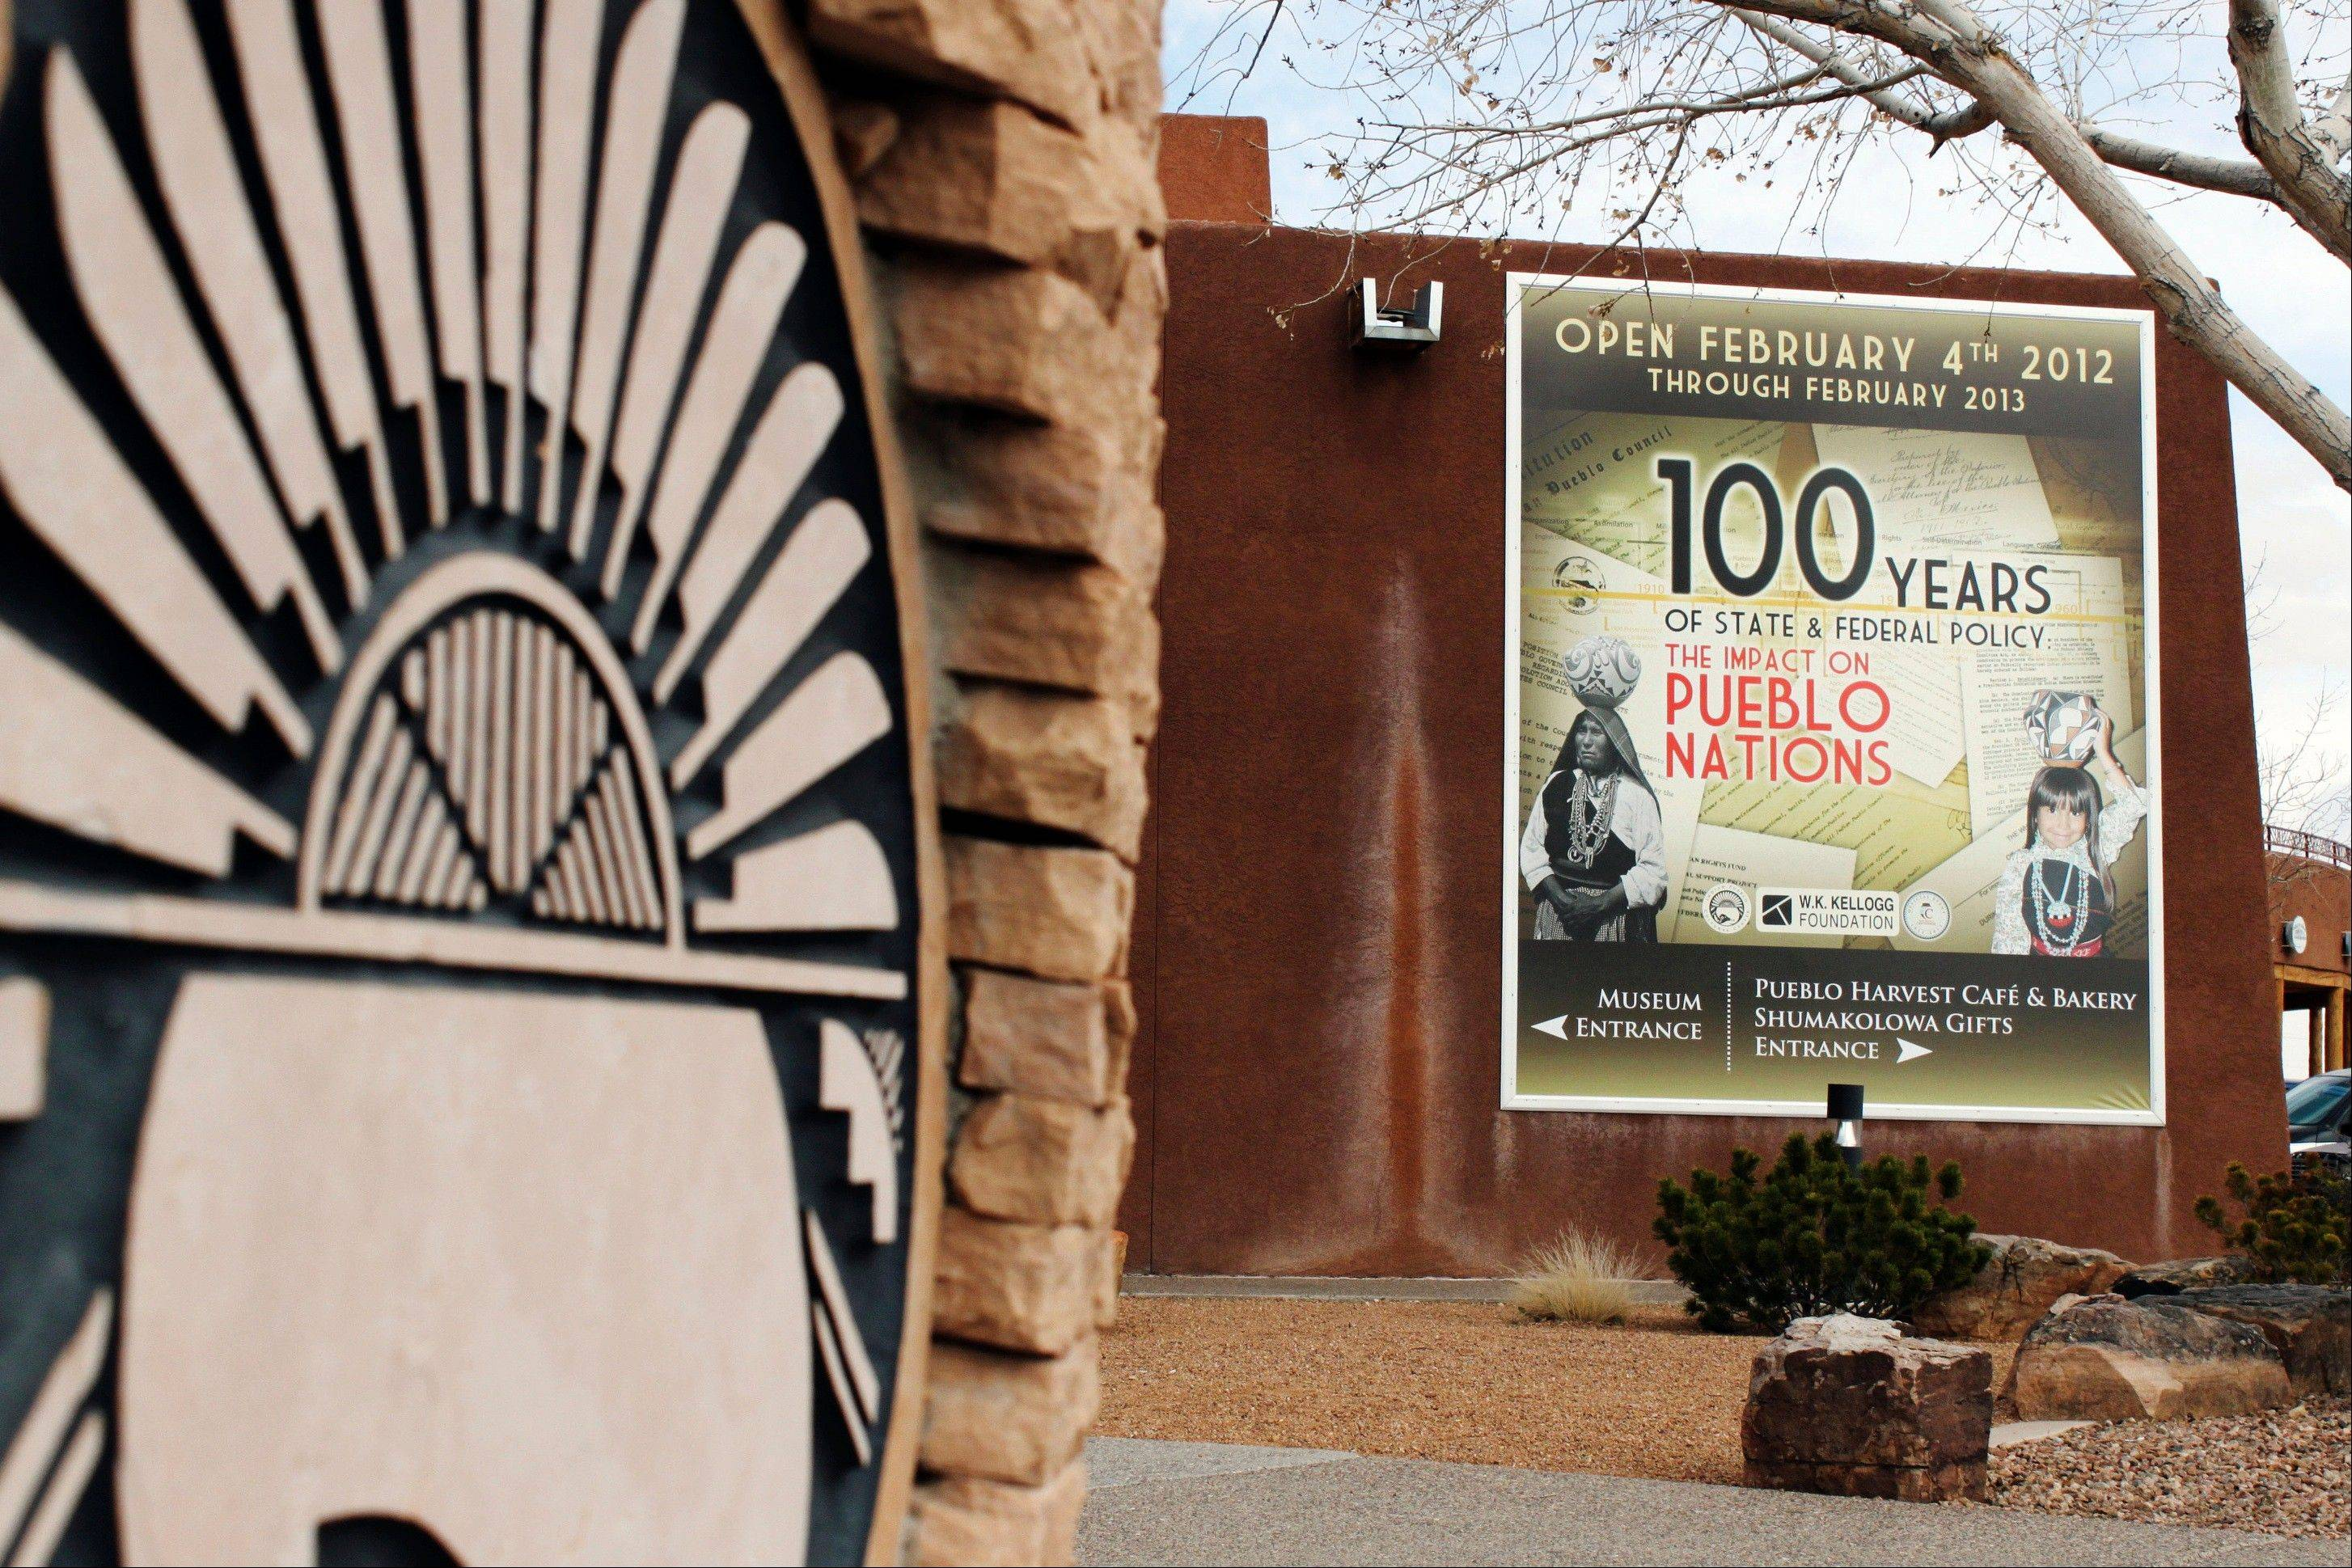 The Indian Pueblo Cultural Center in Albuquerque, N.M., is hosting a special exhibition highlighting 100 years of state and federal policy and the effects on New Mexico's pueblos.